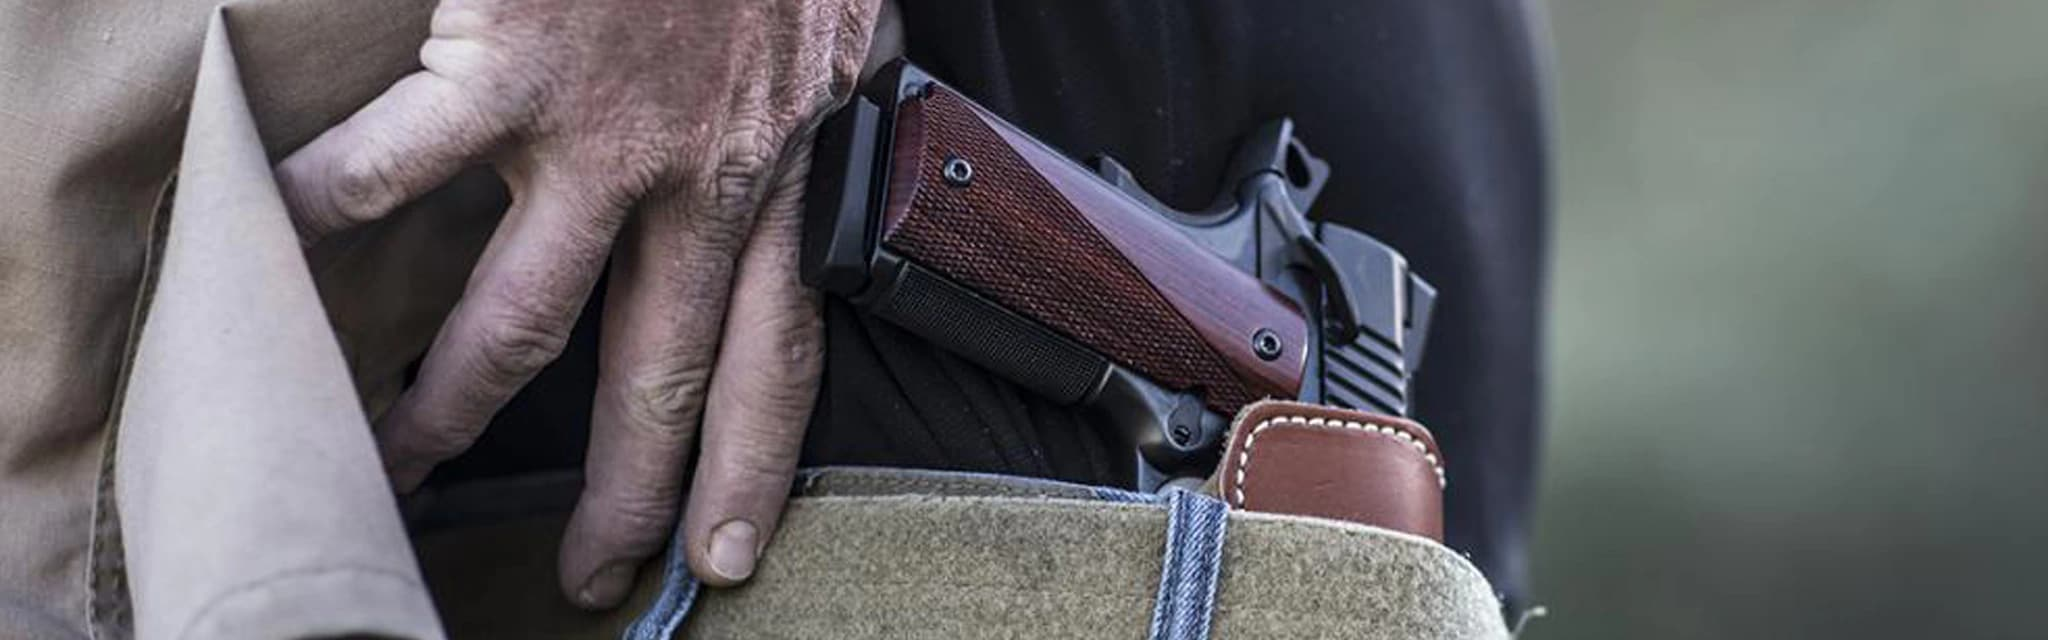 Concealed carry - close up of a pistol in a man's holster